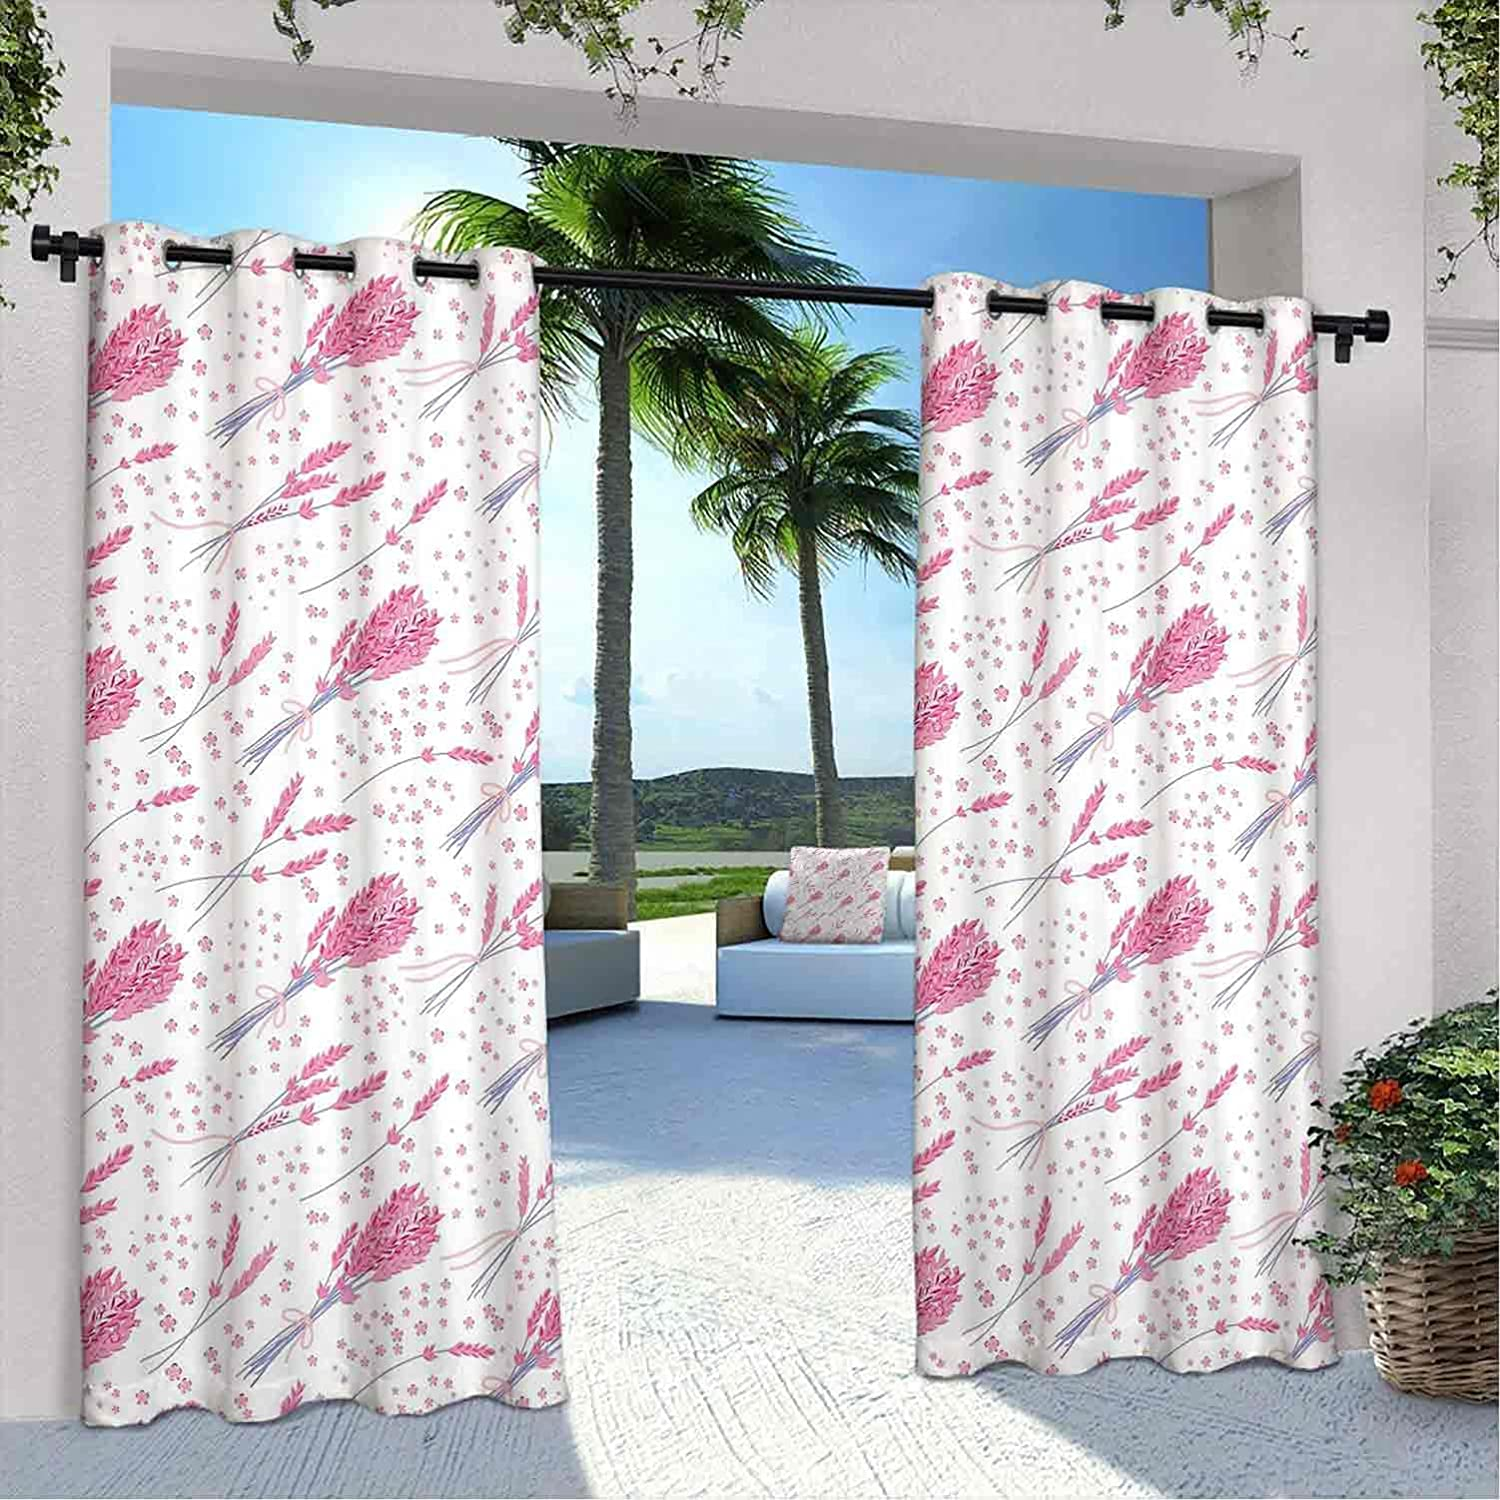 Terrace Outdoor Lavender Curtain New product Max 75% OFF Vintage Bouquets Ru Hand Drawn